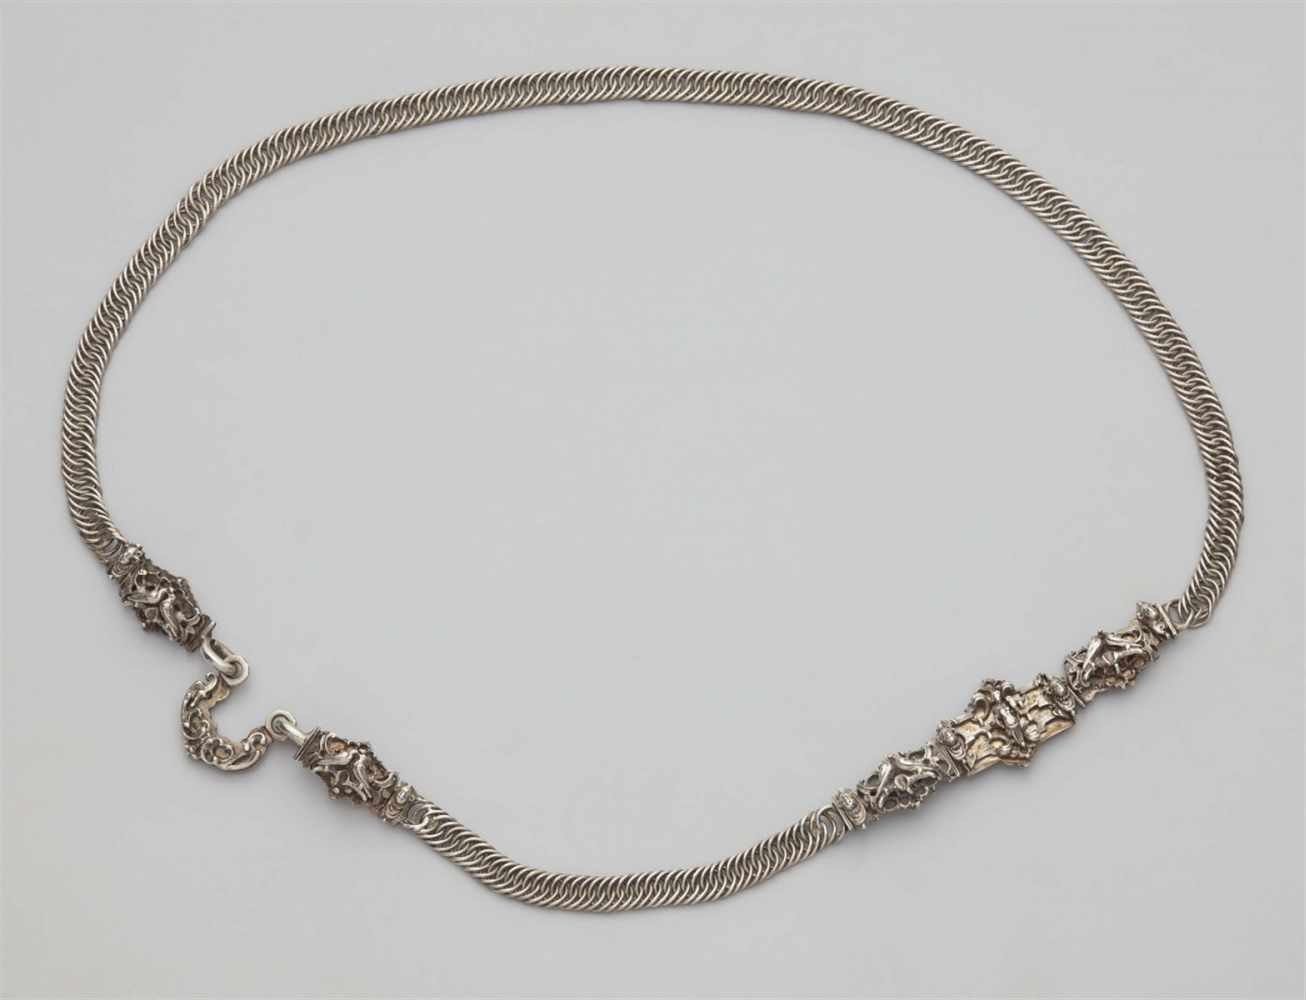 Lot 309 - A Nuremberg silver bridal beltDesigned as a flat narrow chain, the cast silver decorative clasp